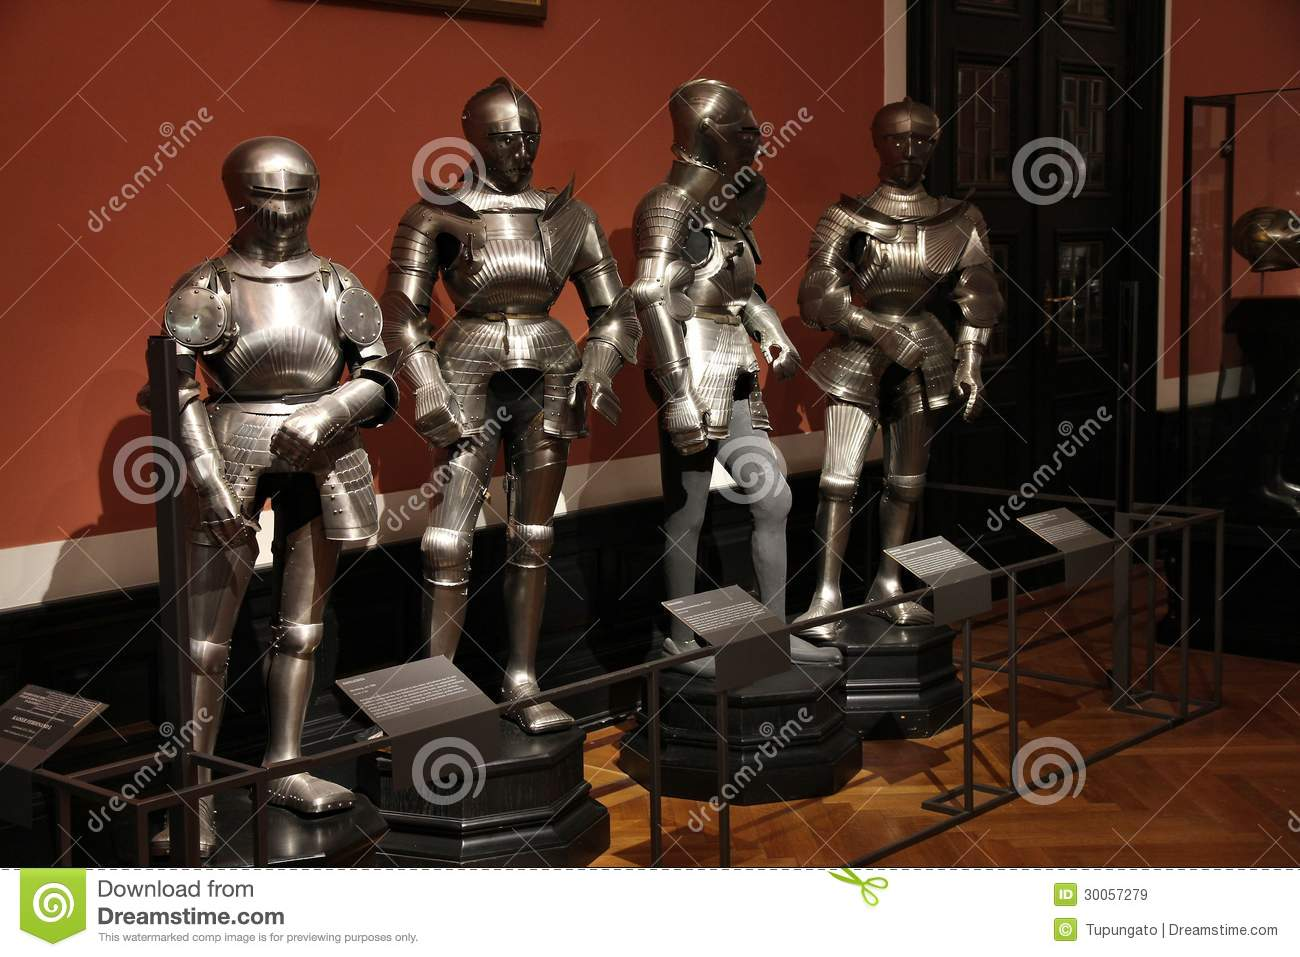 Collection of Arms and Armor Vienna, Vienna museum editorial stock image. Image of armor, interior ...